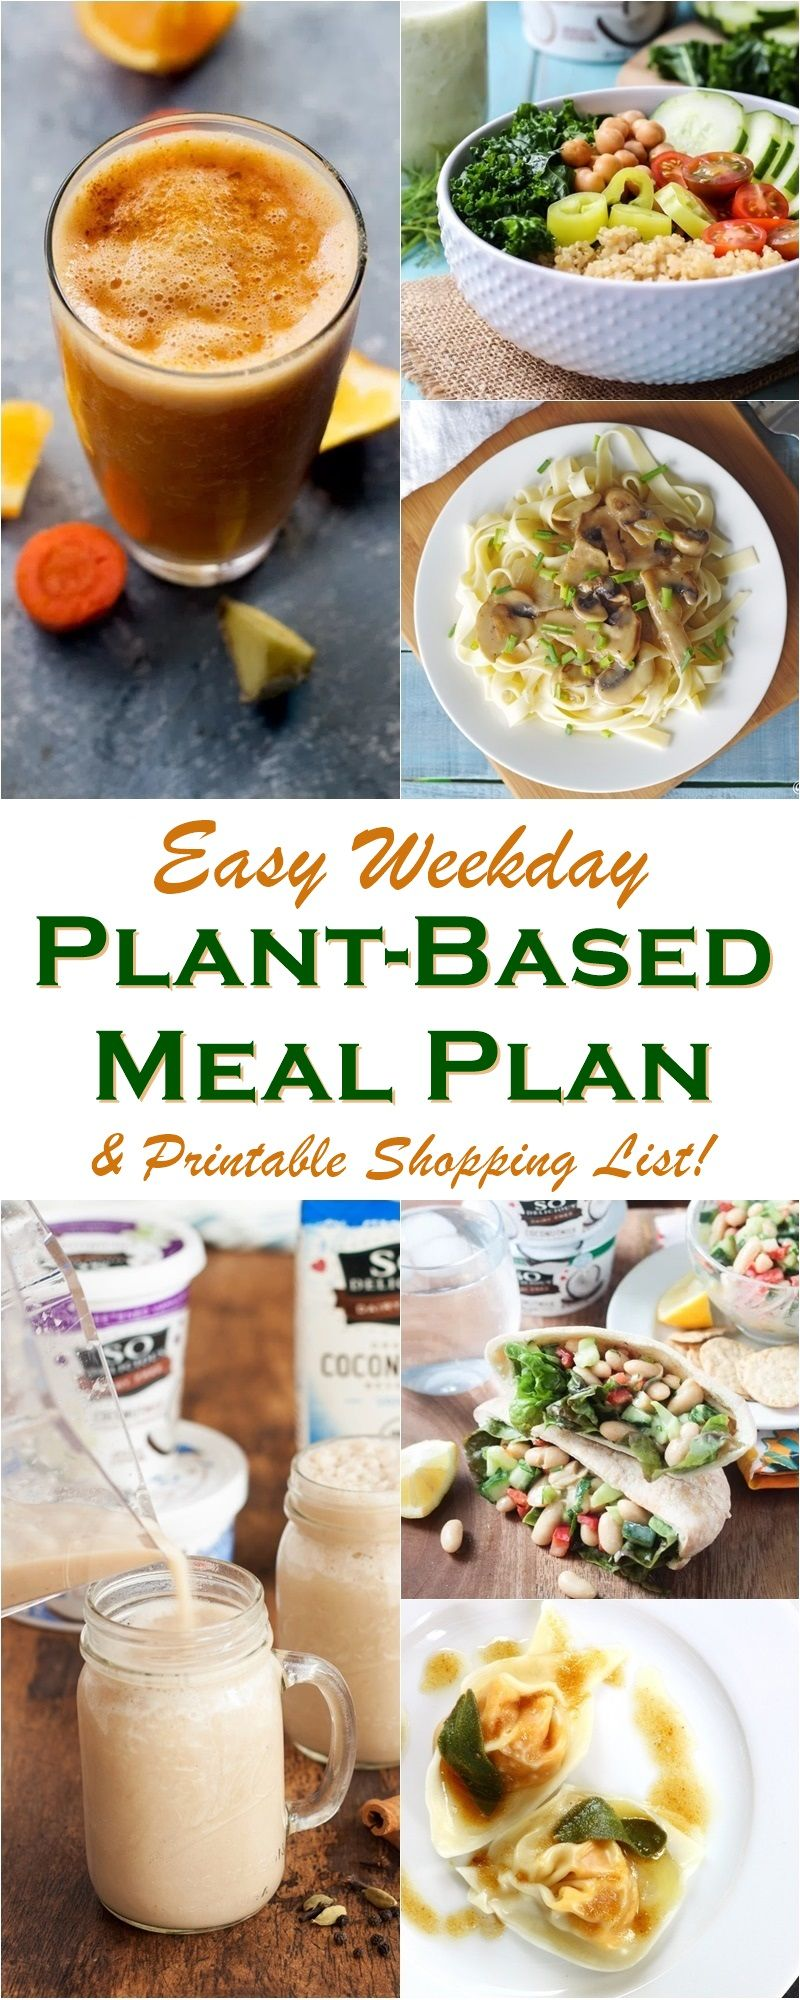 Easy weekday plant based meal plan shopping list receta jugo easy weekday plant based meal plan shopping list forumfinder Choice Image